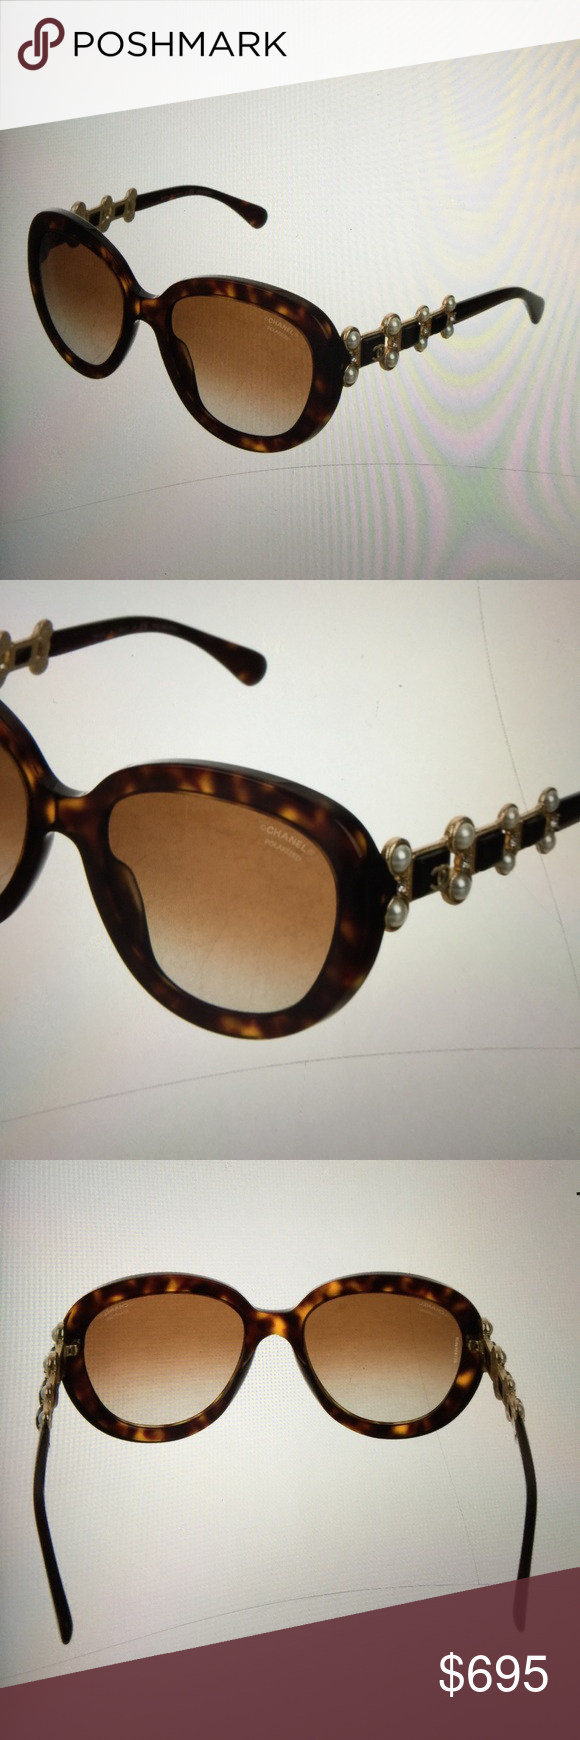 2dea18dcd6 Chanel Sunglasses Chanel Bijou 5334 Polarized Sunglasses. Brown  tortoiseshell with goldtone hardware